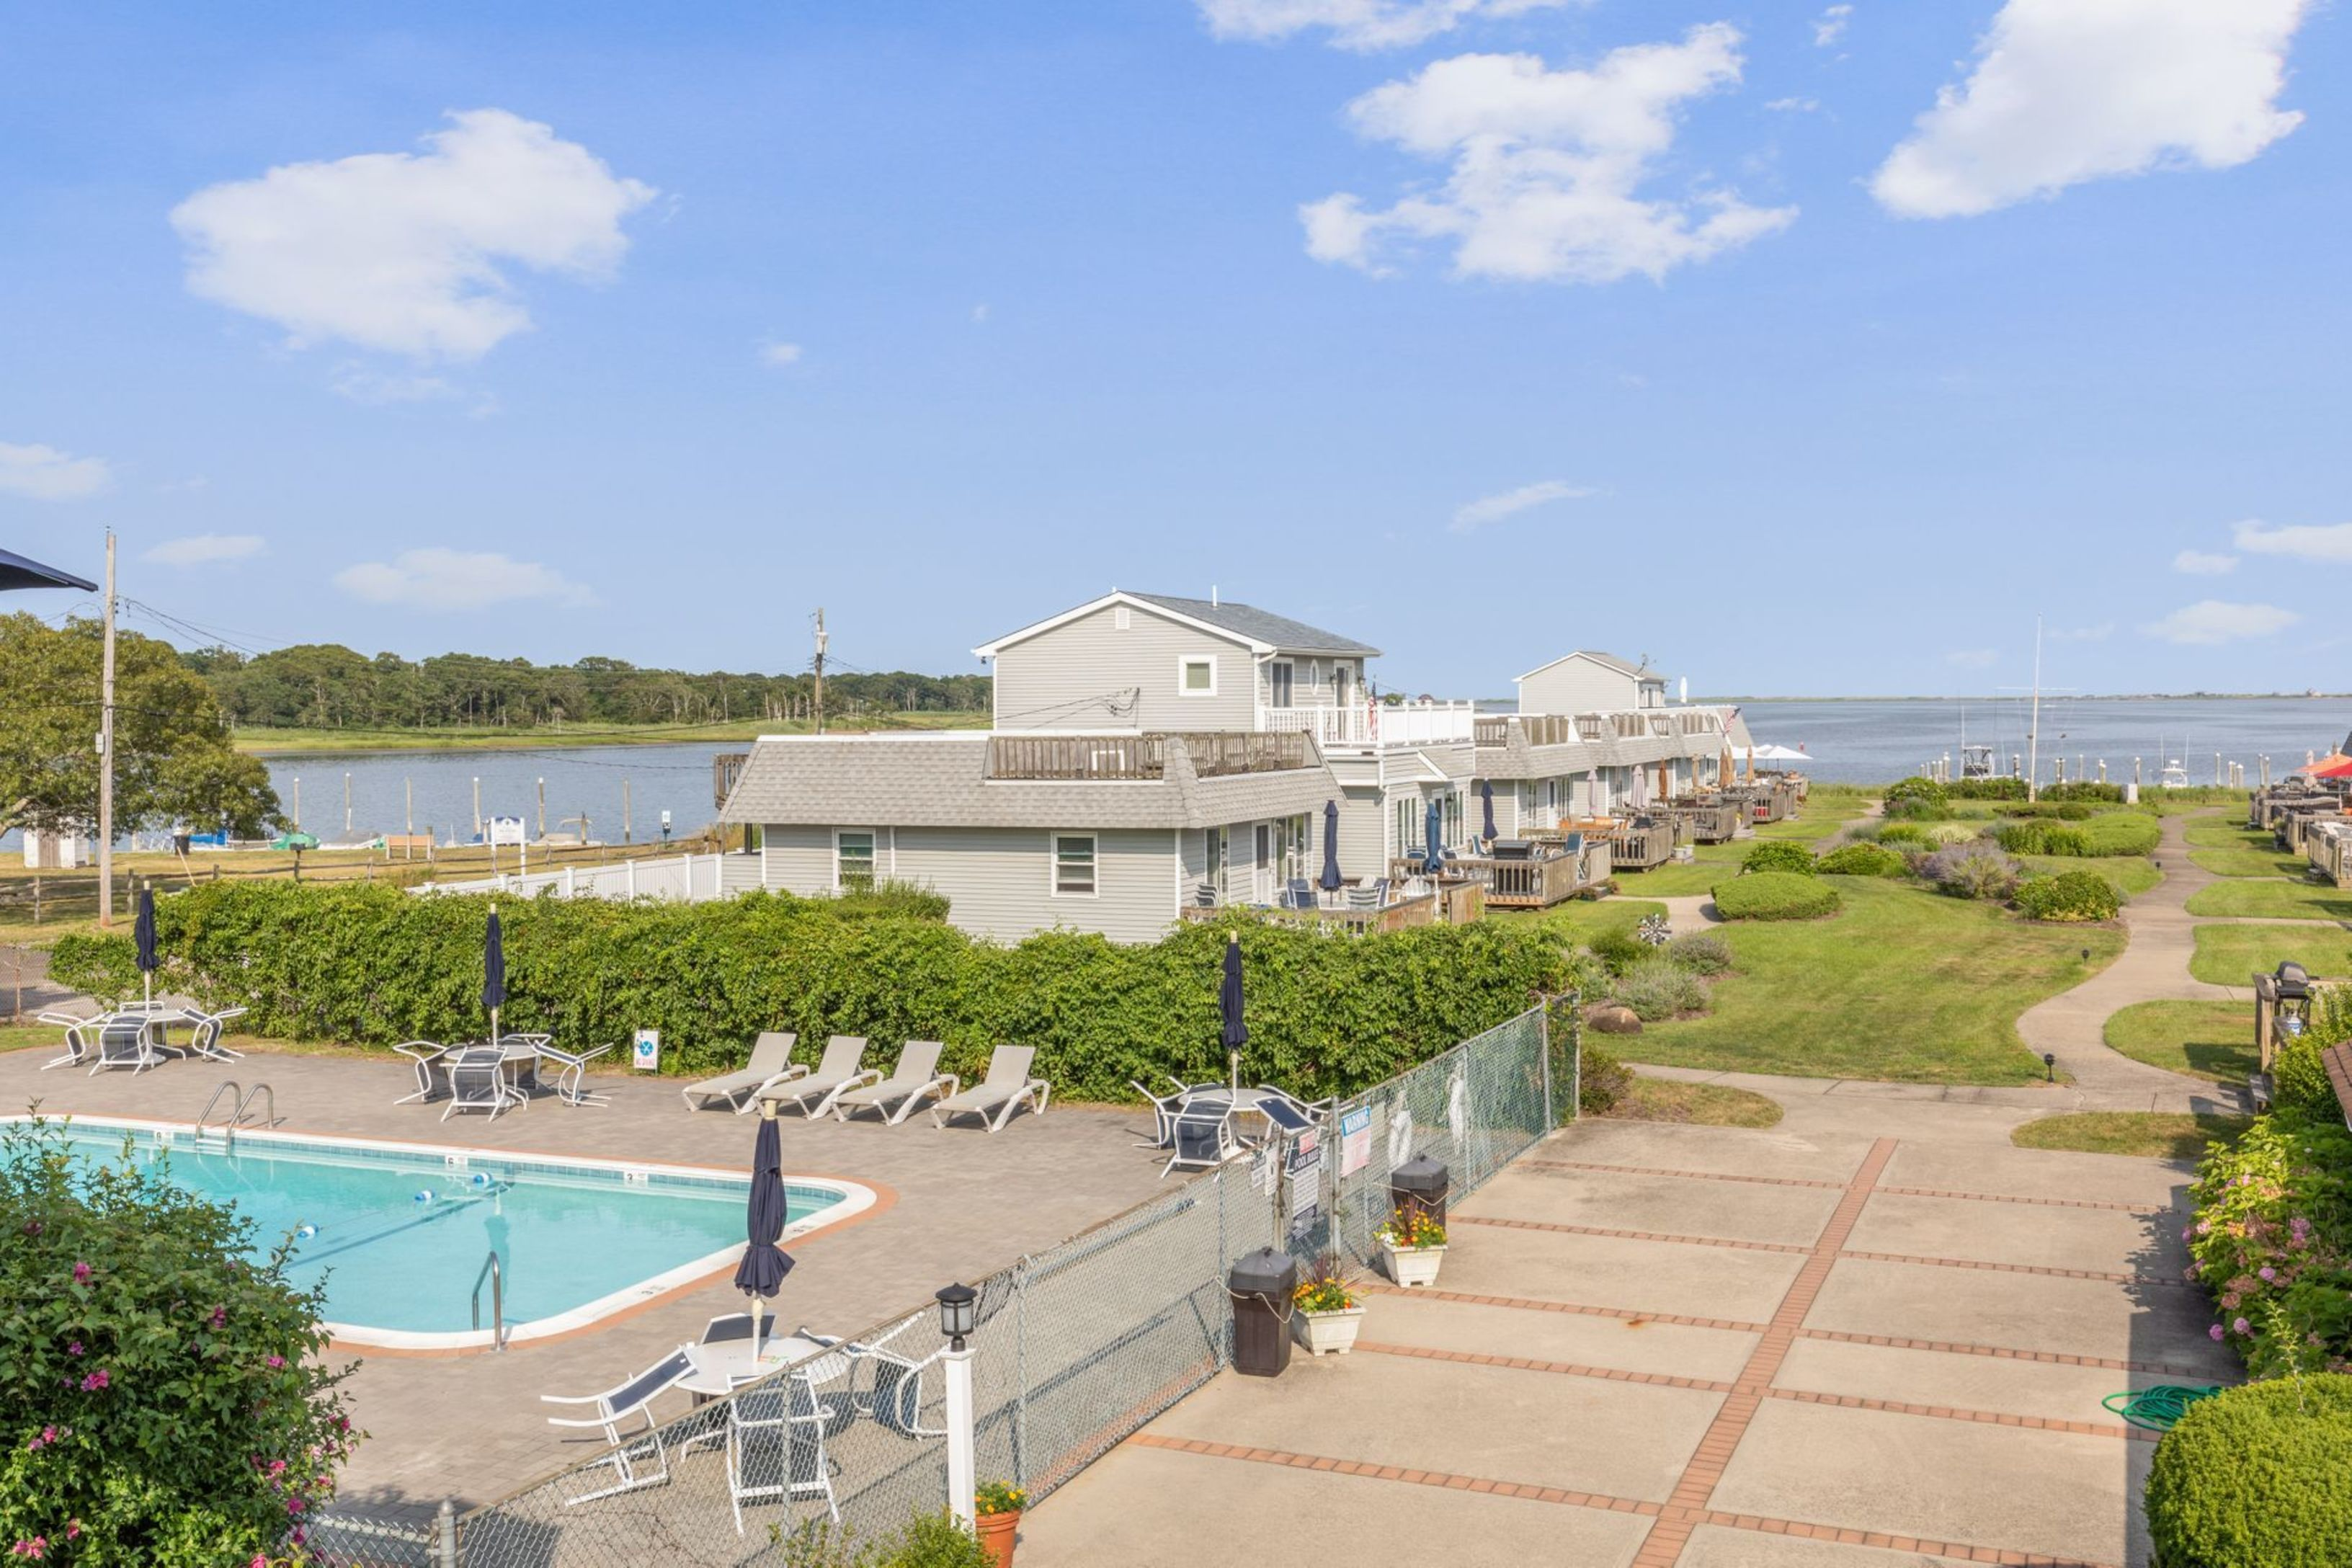 32 Bay Ave Apt 17 - East Quogue, New York